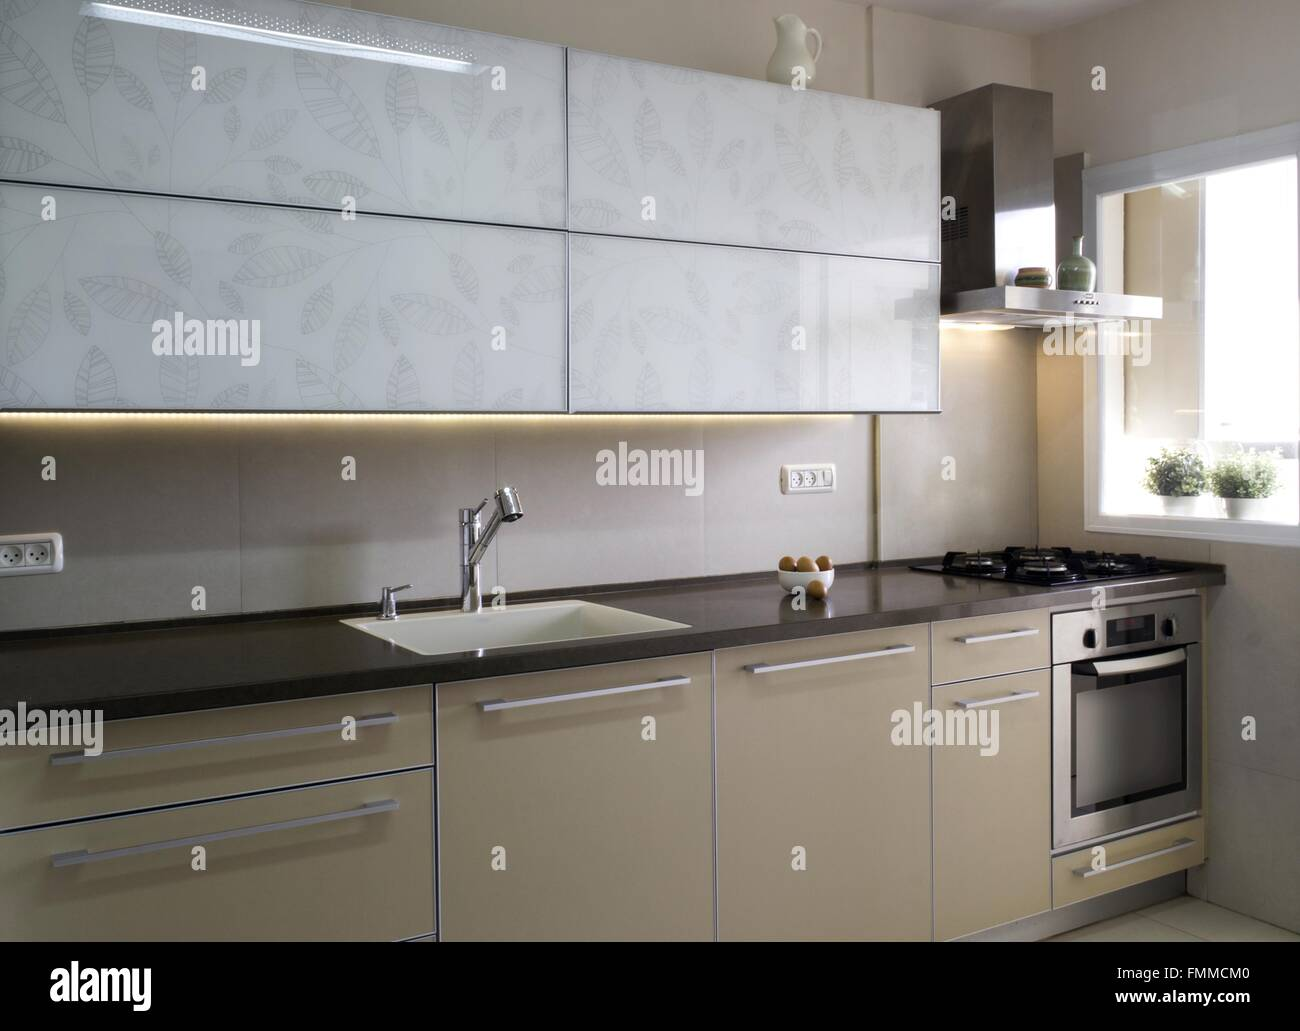 captivating beige gloss kitchen | Modern kitchen interior in beige and cream colors Stock ...